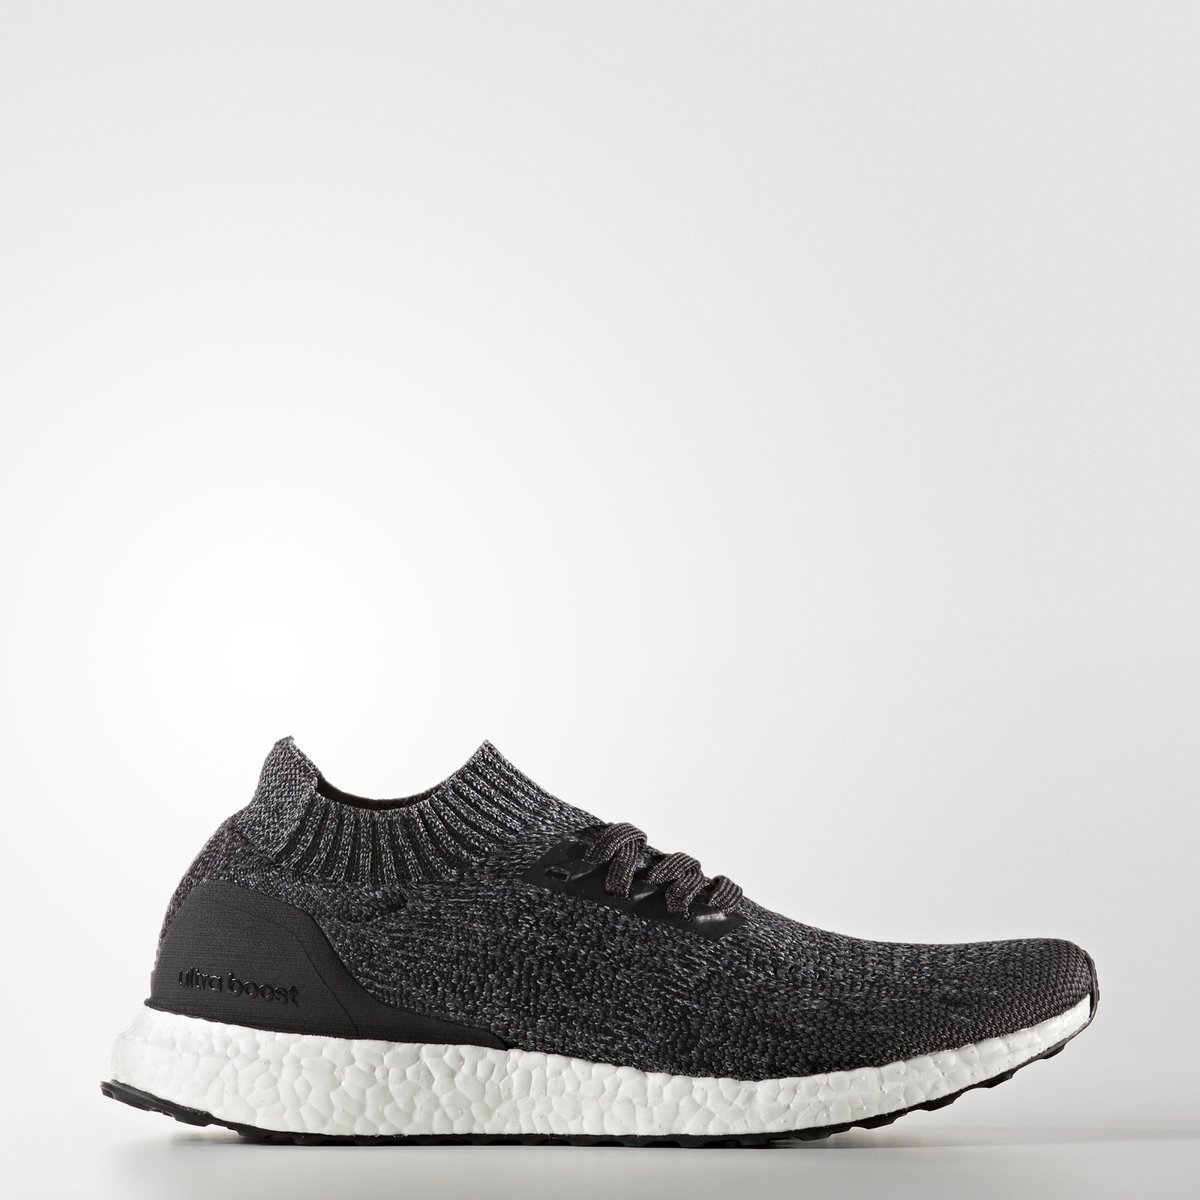 cheap for discount 2e747 4e1be adidas alerts on Twitter: